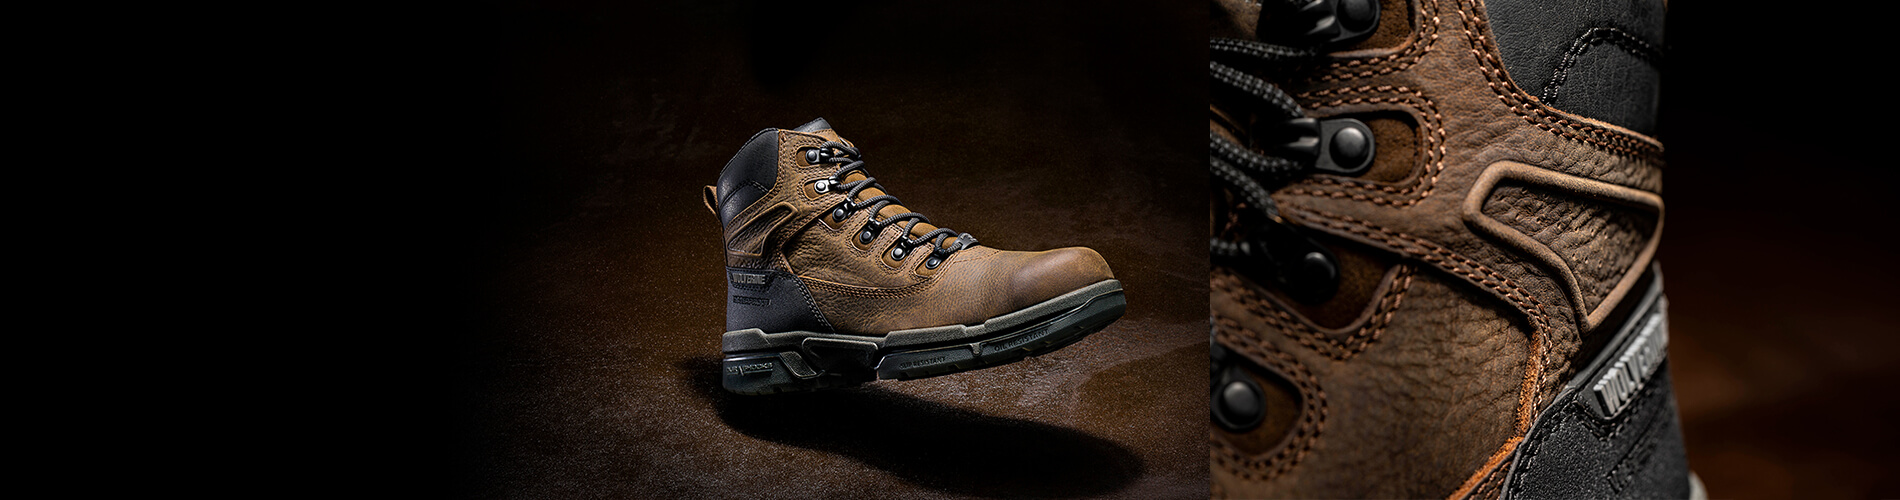 b397c701c6f Men's Boots, Shoes, Clothes, & Accessories | Wolverine